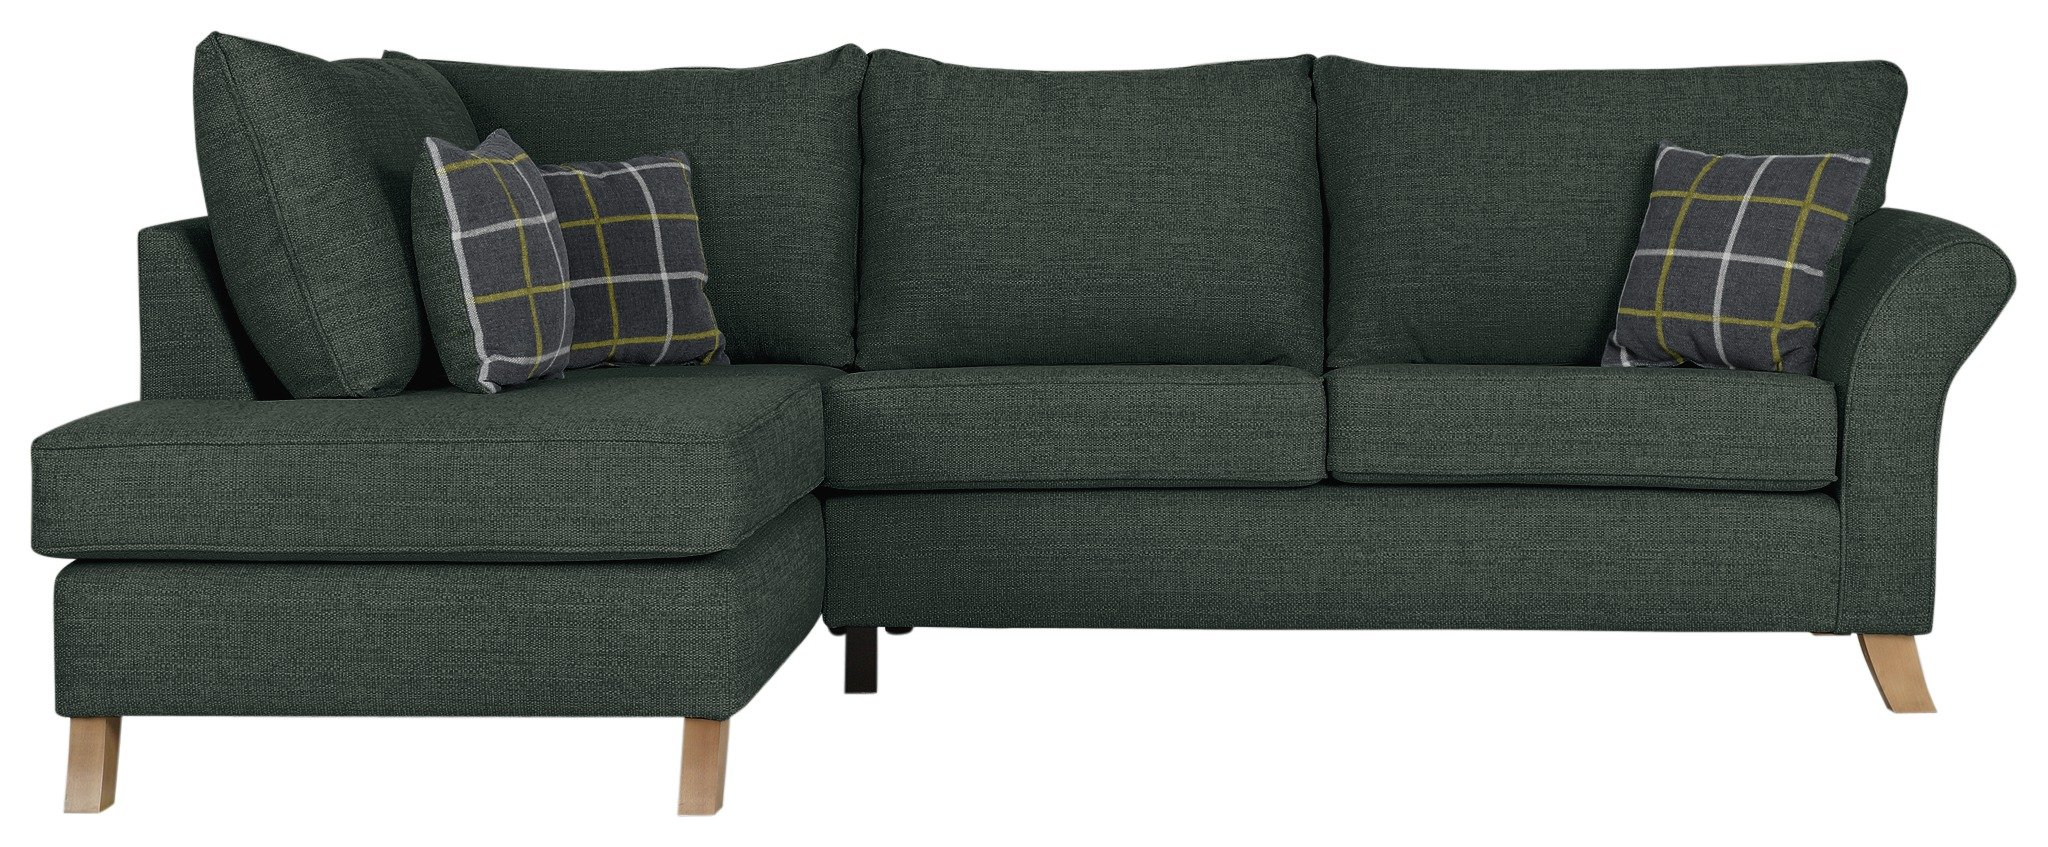 Argos Home Kayla Left Corner Fabric Sofa -Charcoal